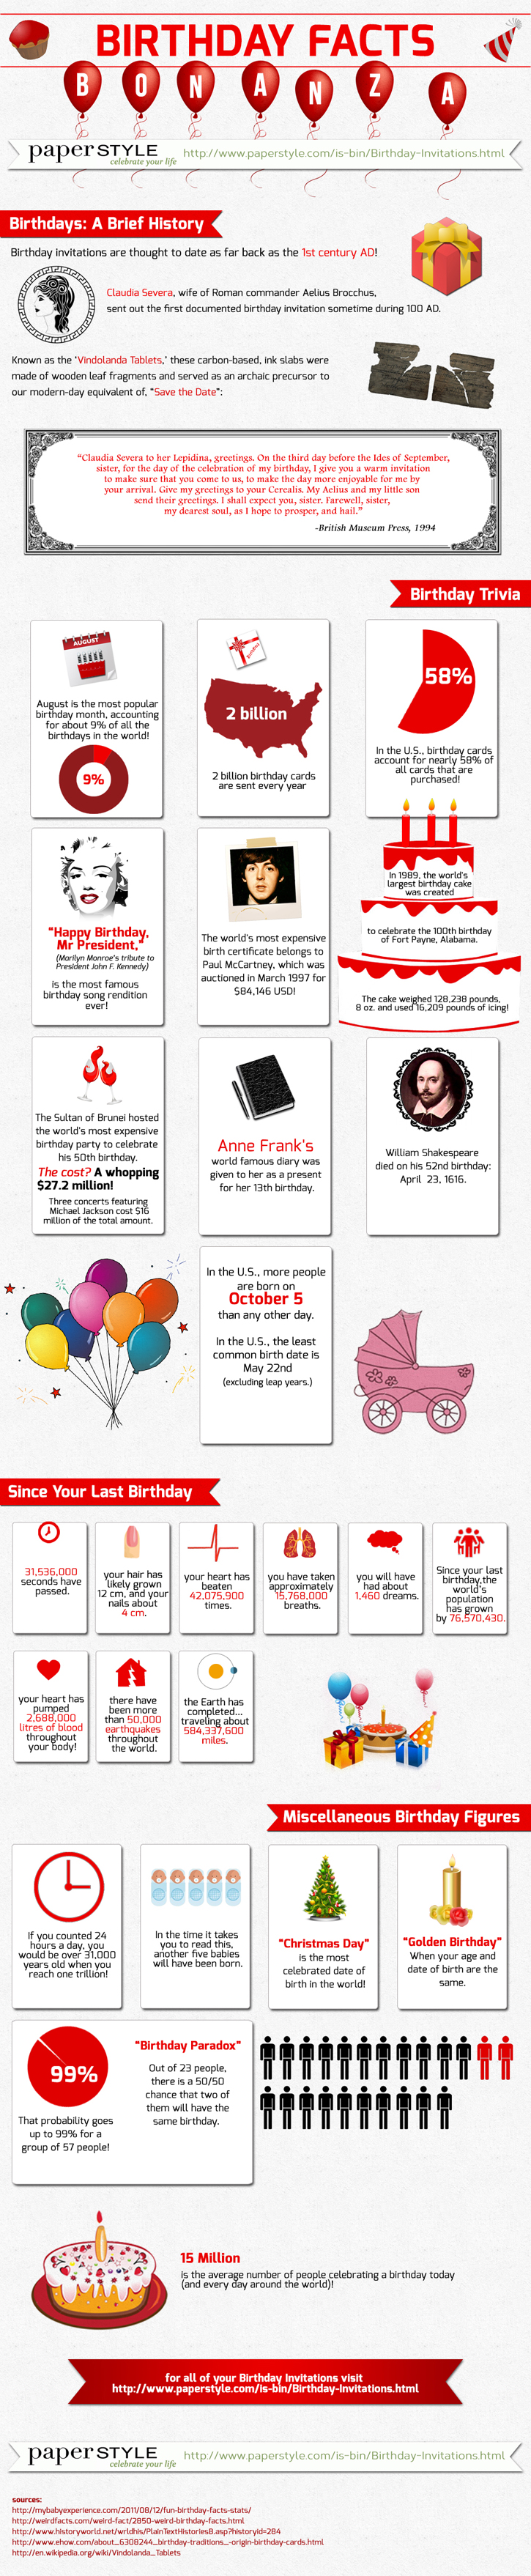 Interesting Facts About Birthdays